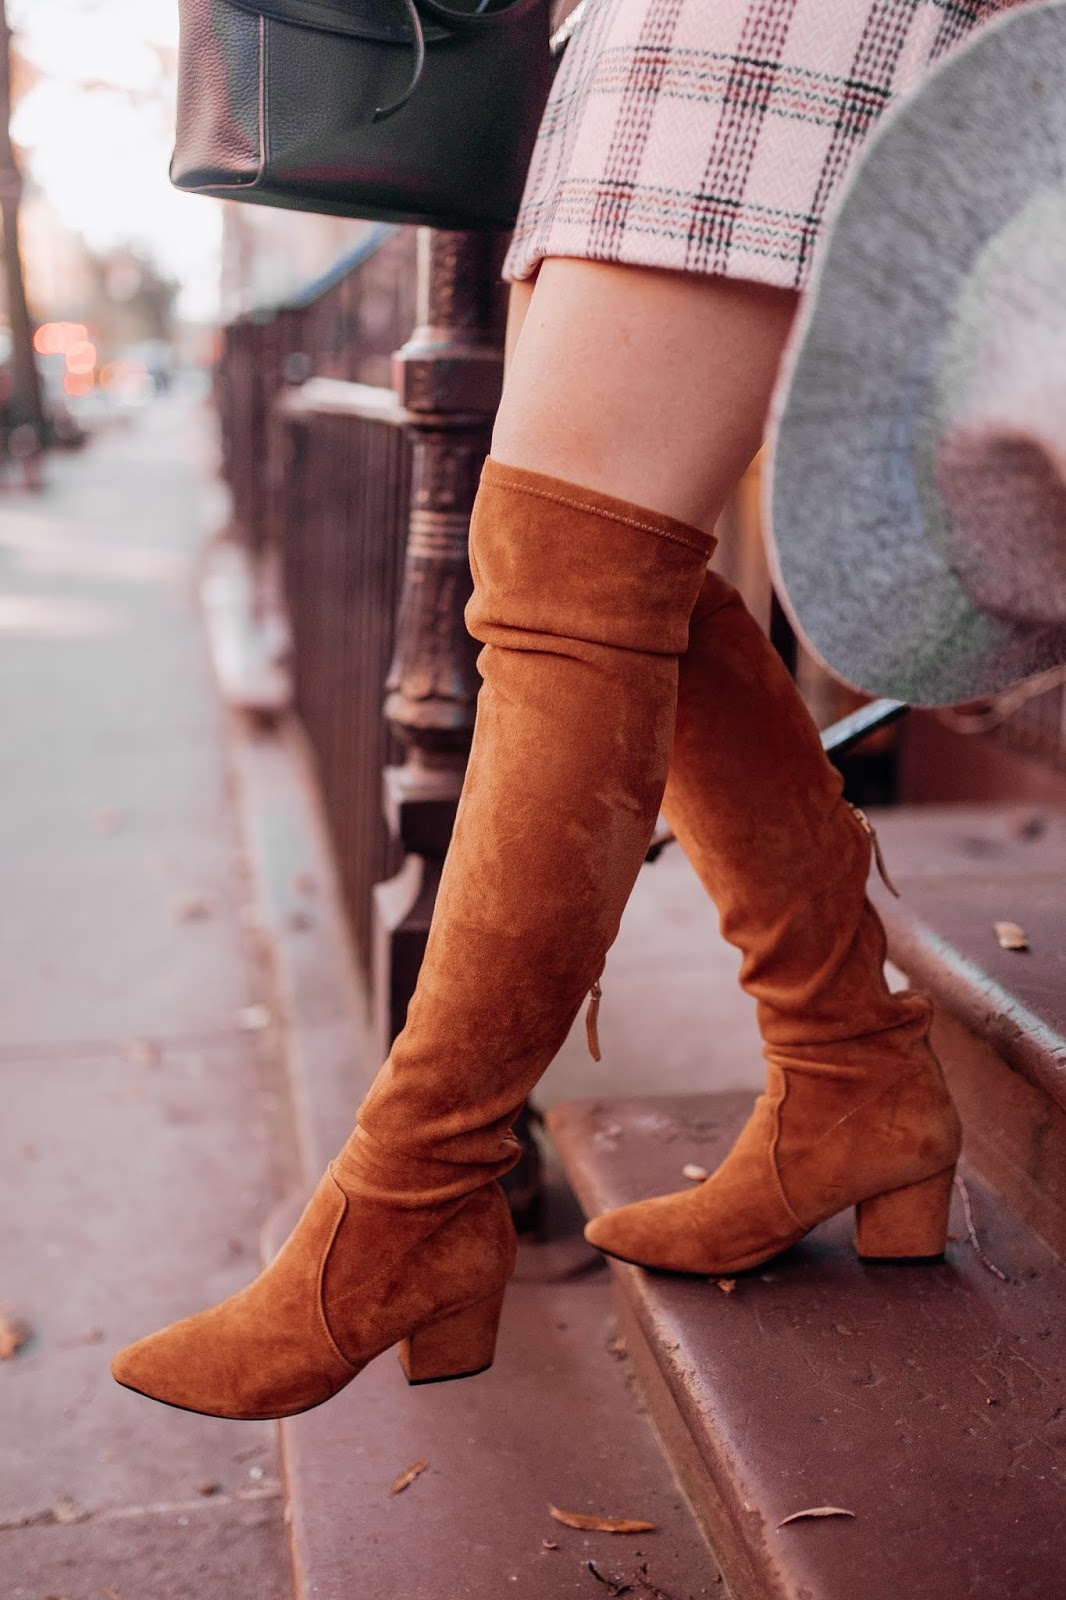 My Honest Review Of The Goodnight Macaroon Over The Knee Boots Affordable By Amanda Florida Style Blogger Hotshot picks for goodnight macaroon. goodnight macaroon over the knee boots